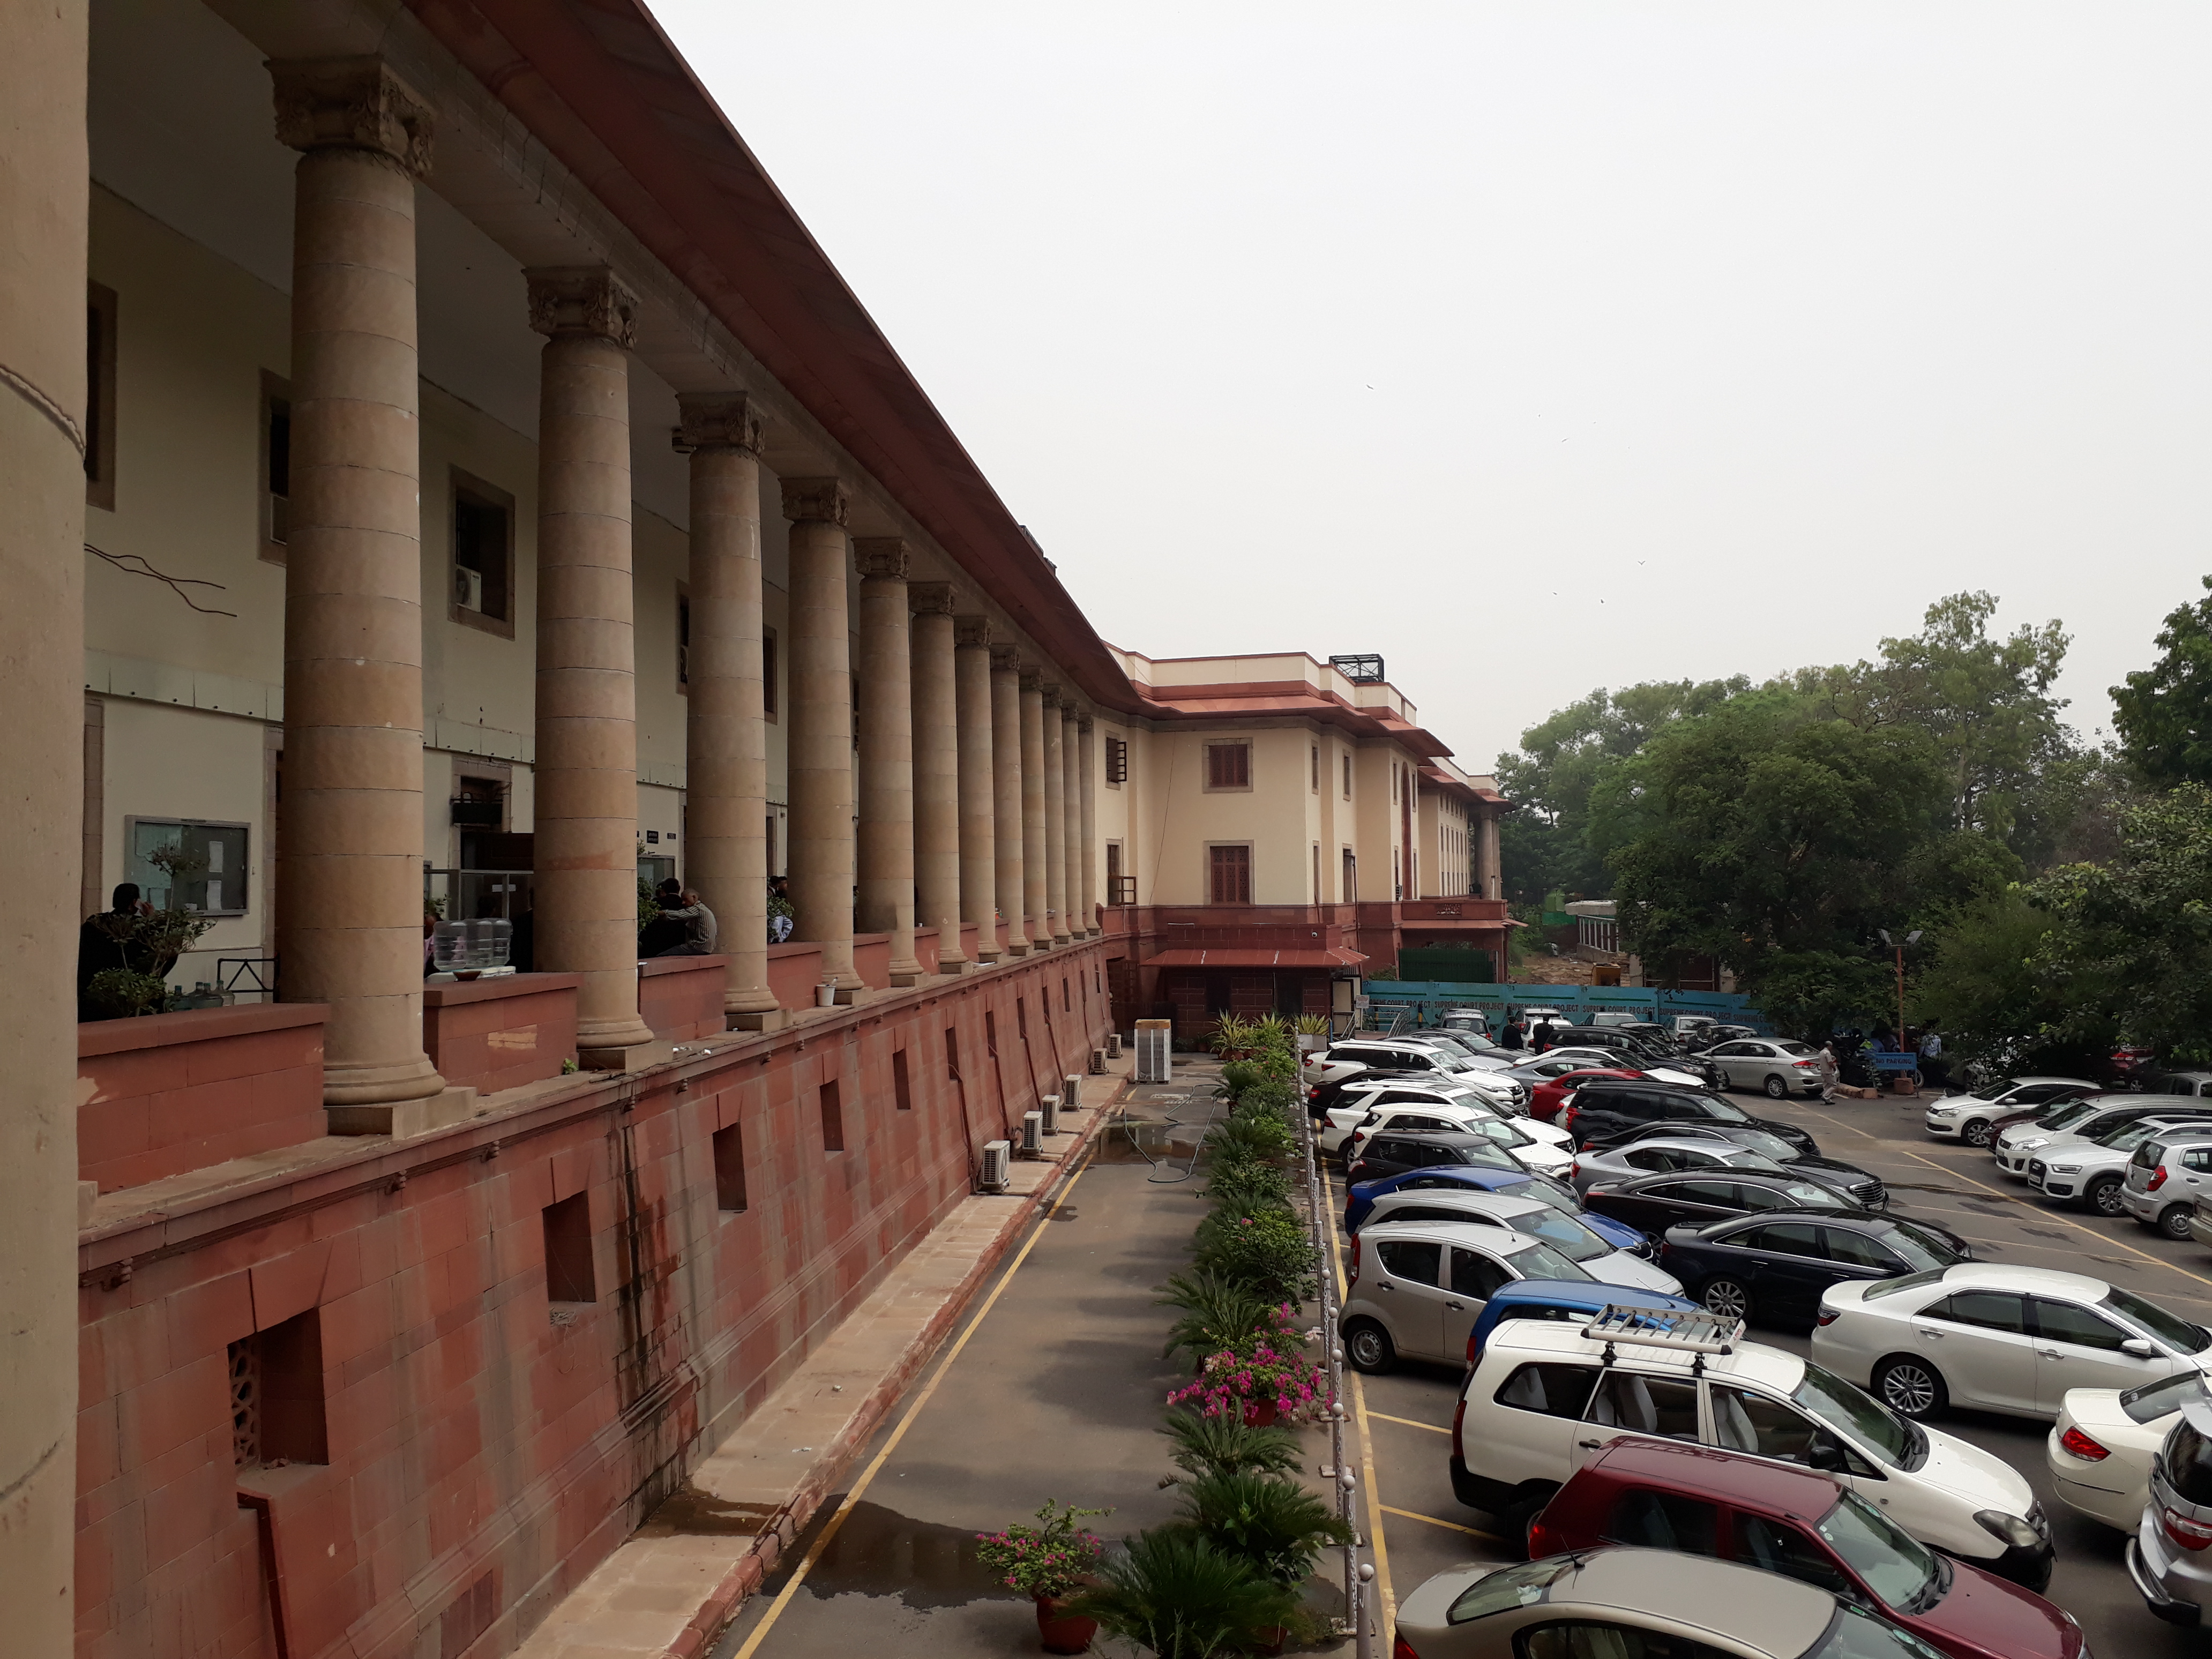 Building_of_The_Supreme_Court_of_India